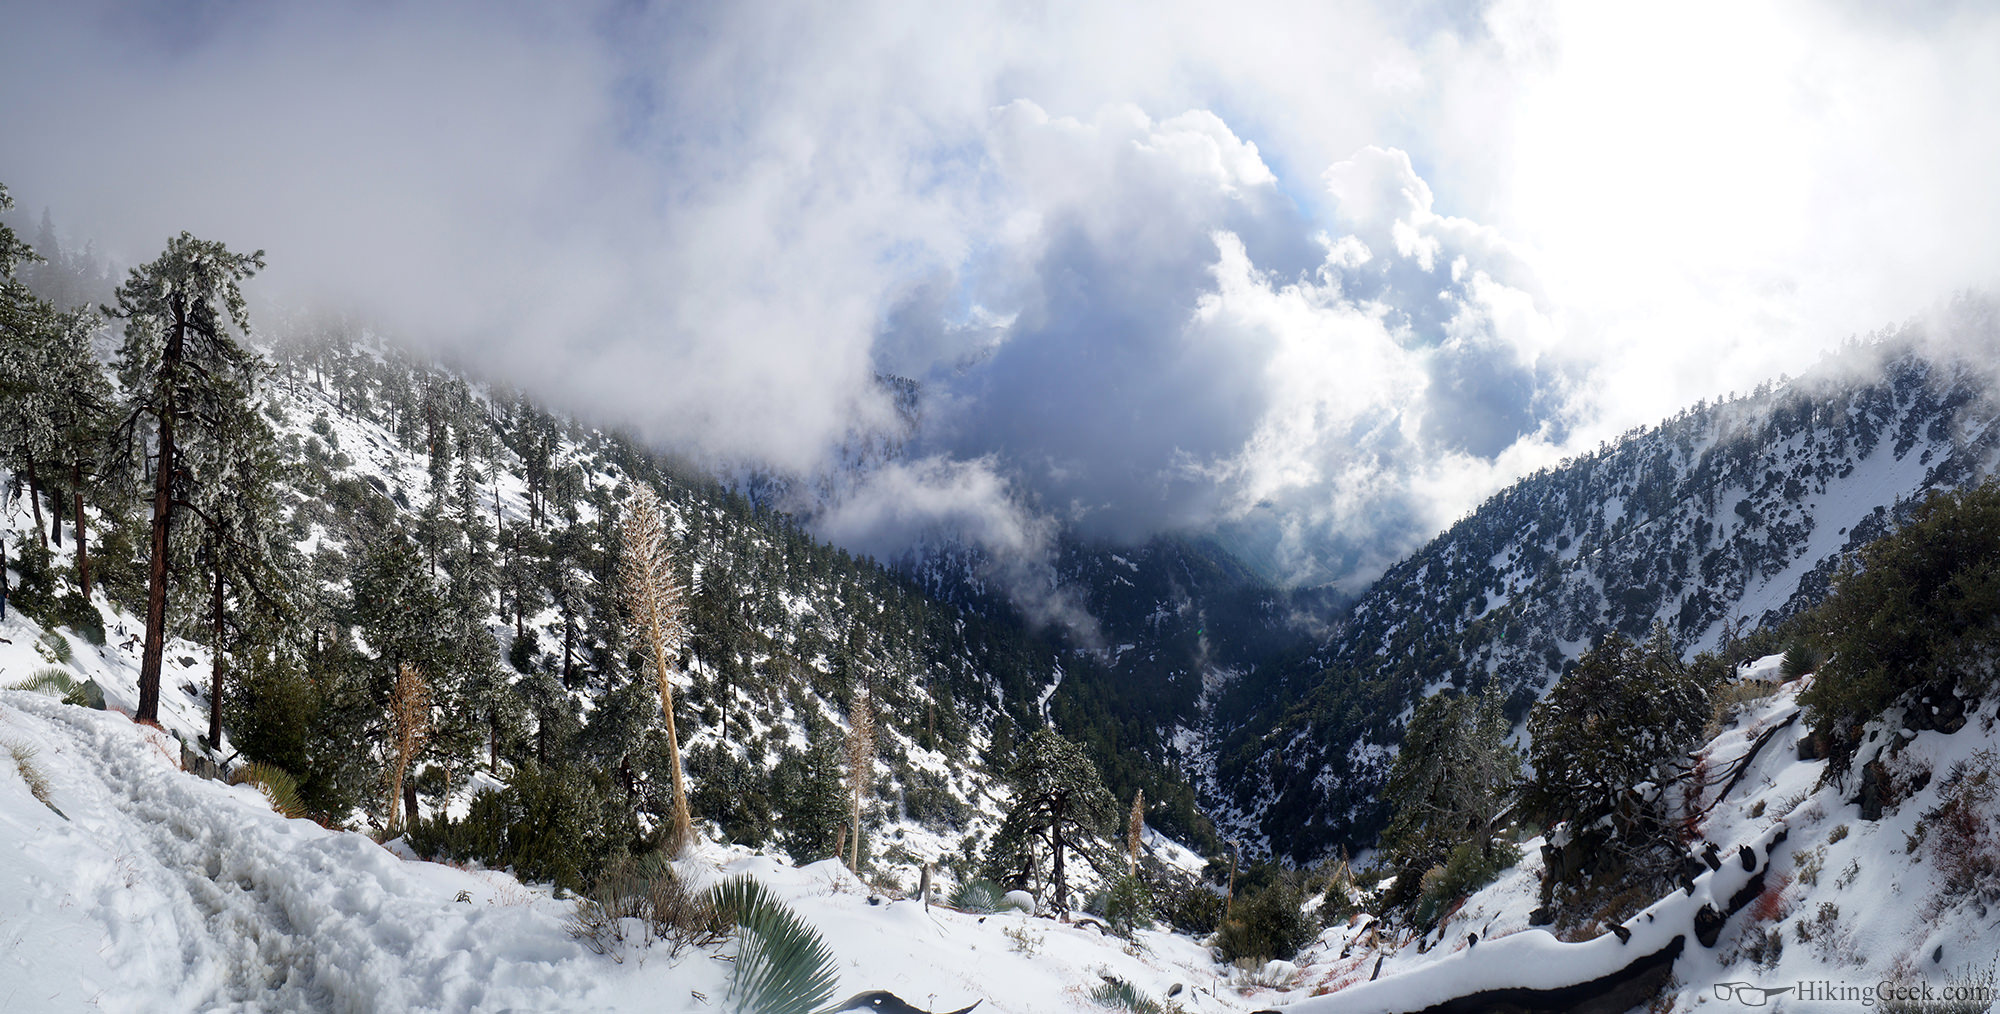 Ski Hut Trail (Mt. Baldy) Trip Report, Dec 13 2014